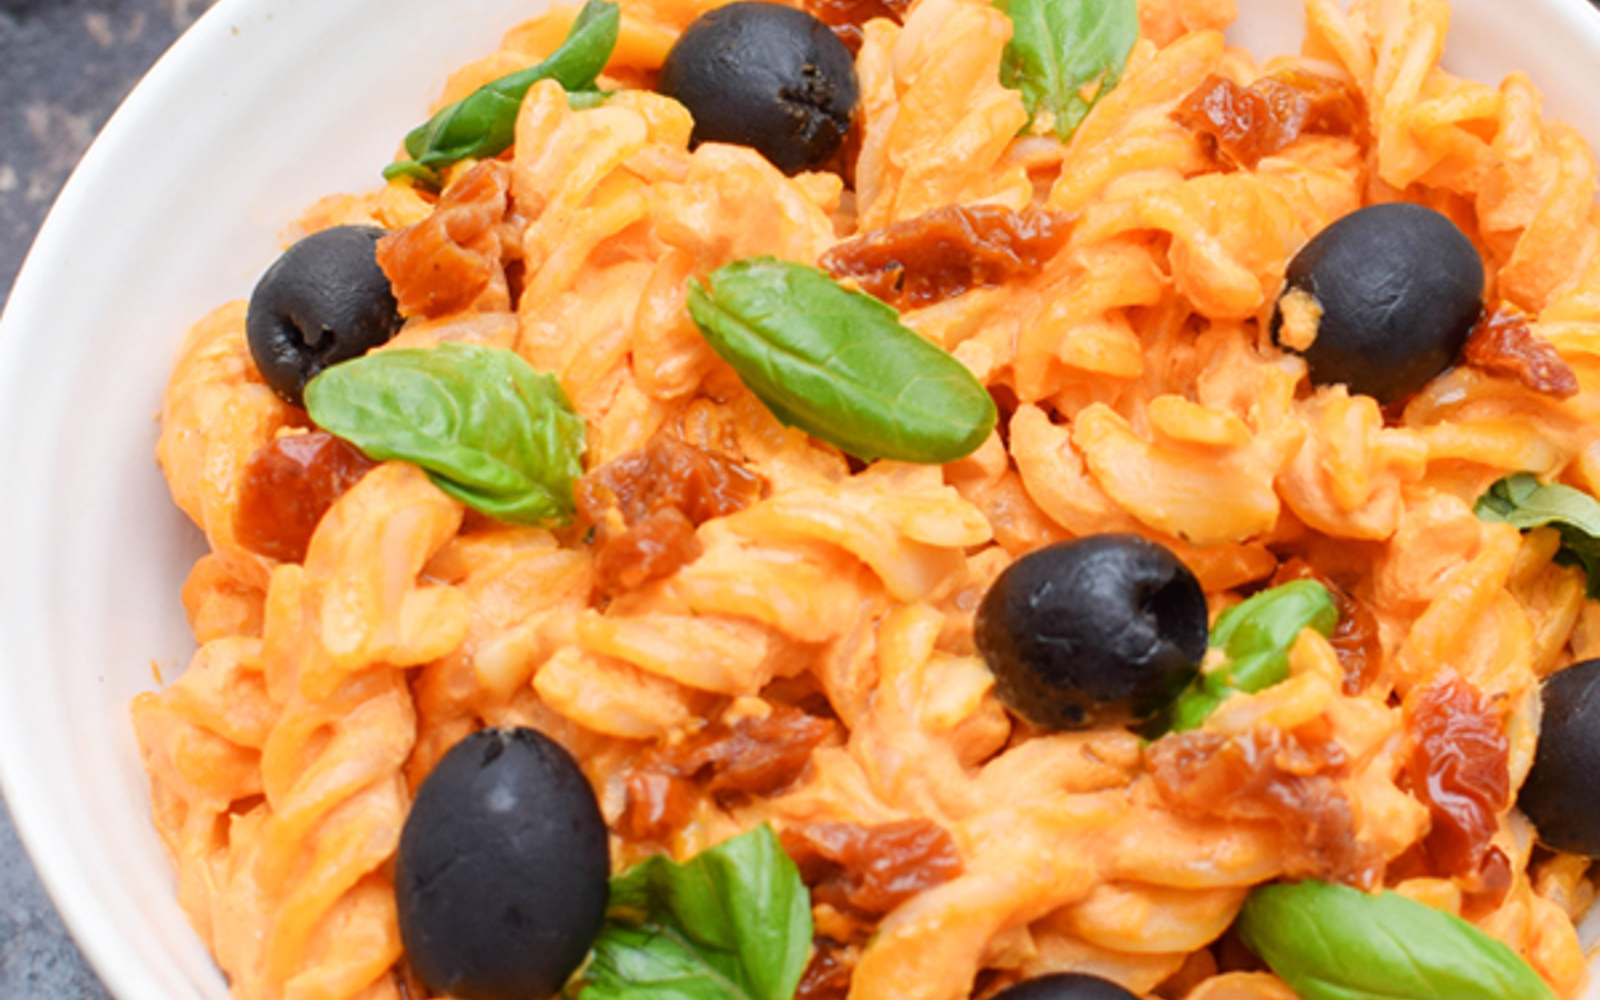 Vegan Grain-Free Pasta With Creamy Red Pepper Cashew Sauce